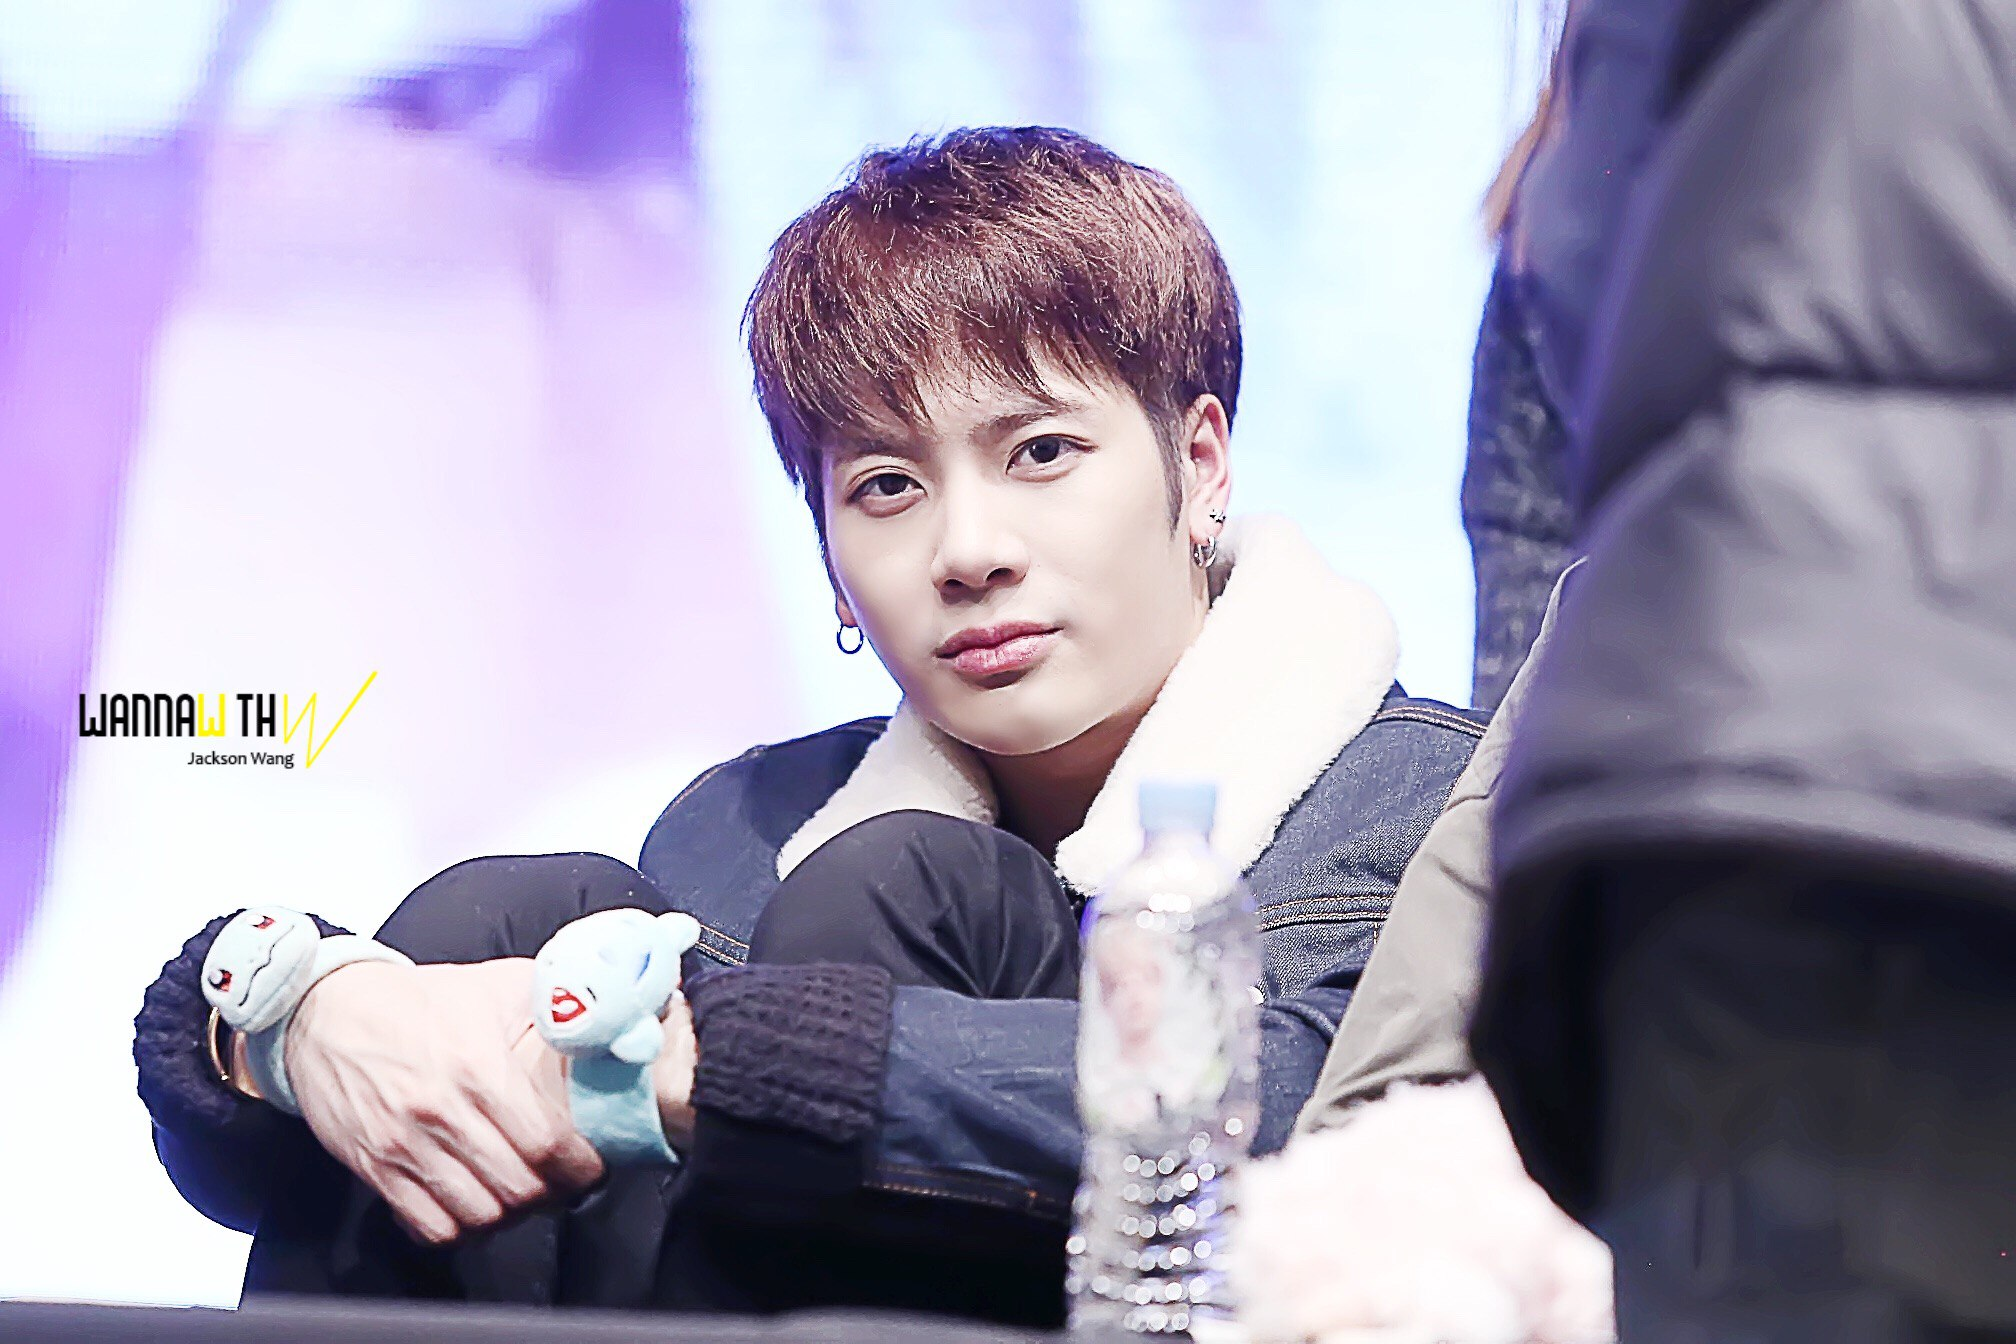 Jackson Wang Of GOT7 Images AuYqFPVWPYM HD Wallpaper And Background Photos